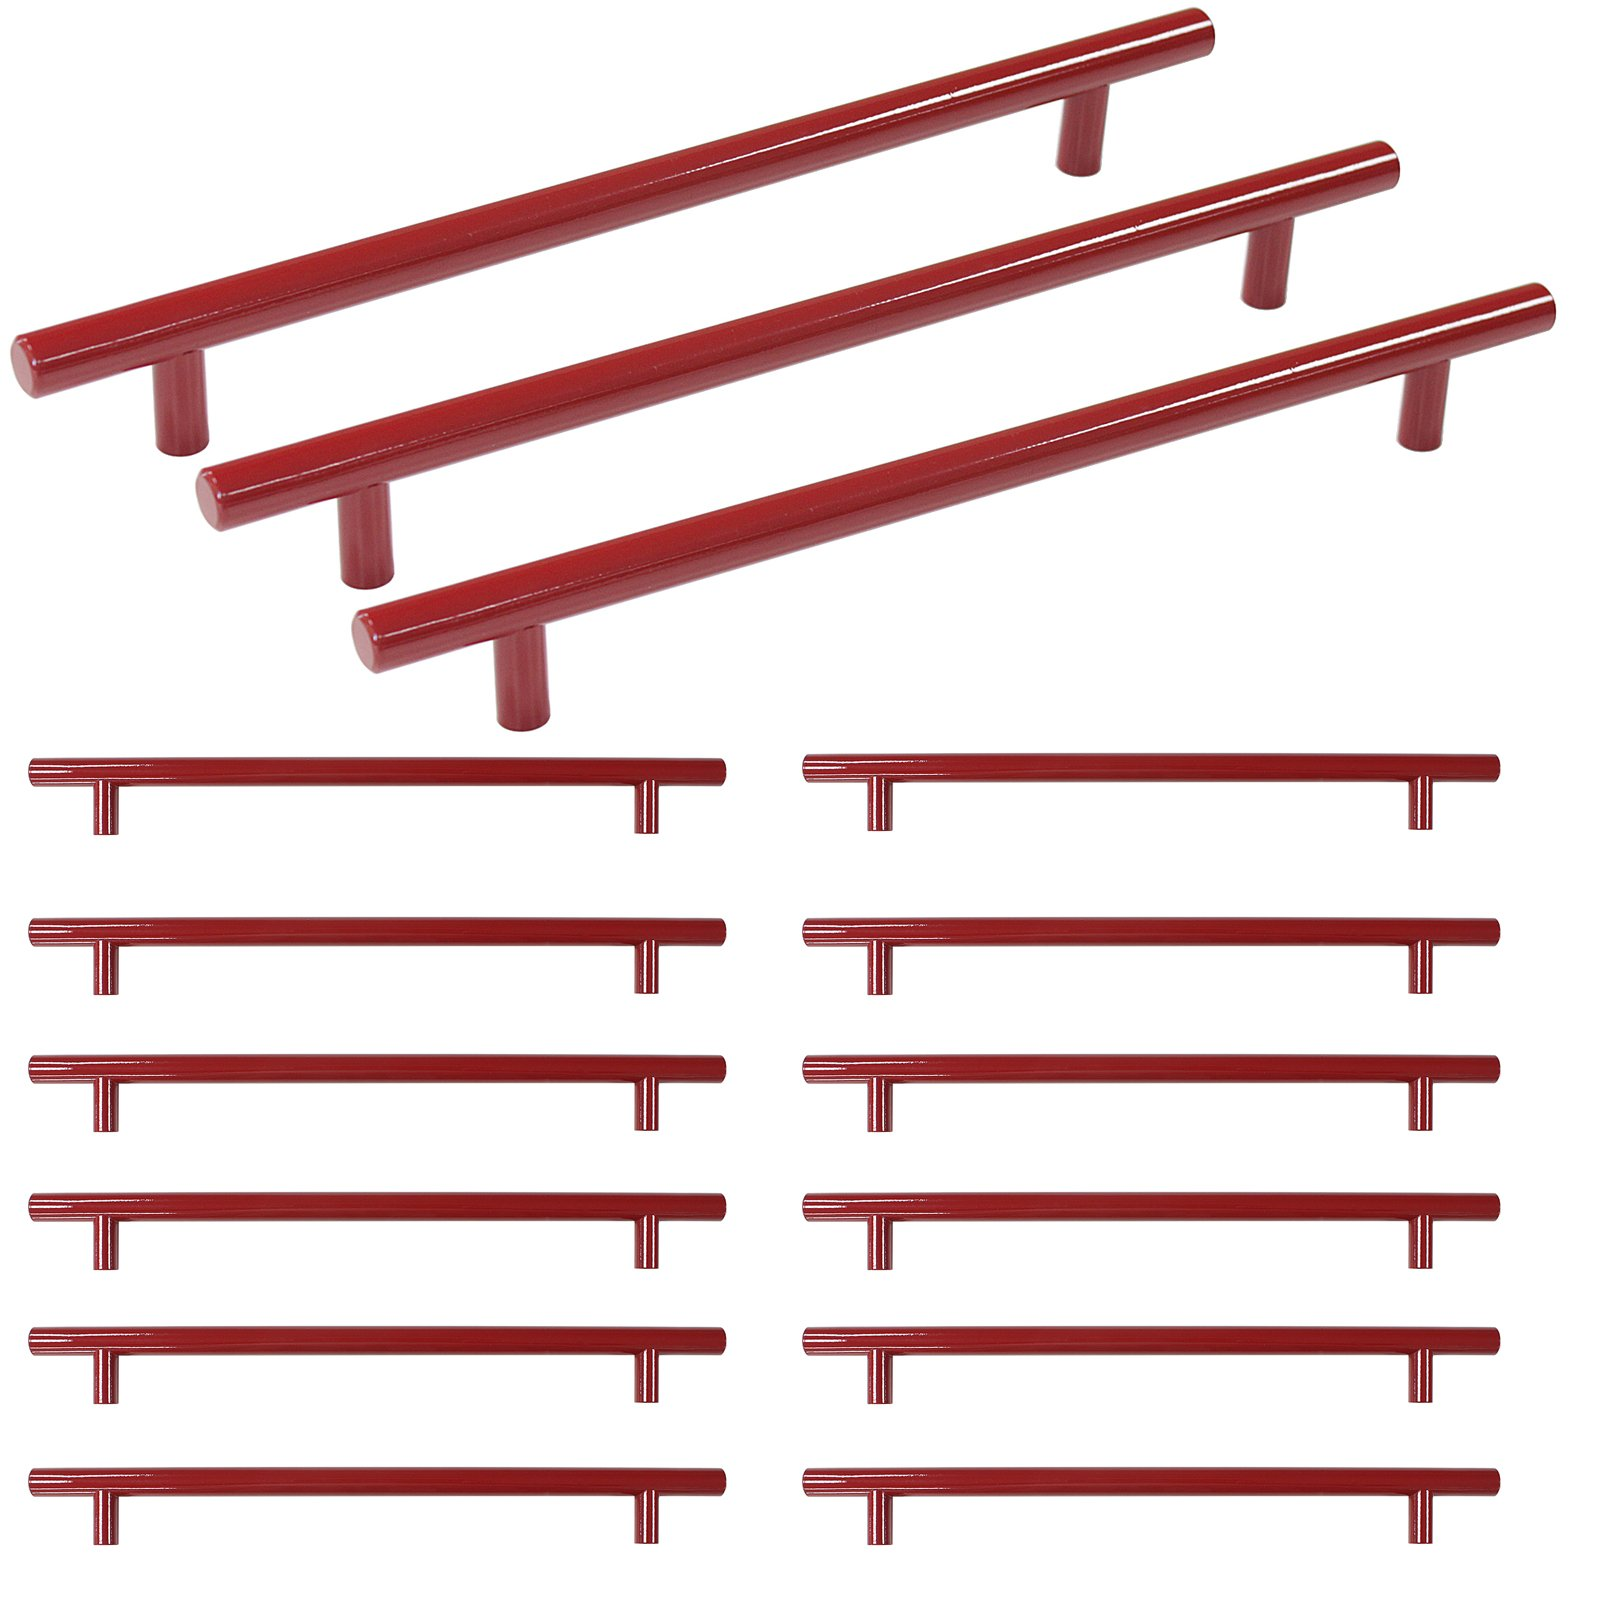 Probrico Stainless Steel Bathroom Drawer Kitchen Cupboard T Bar Dresser Gold Handle Pulls Set - 8-4/5 Inch Hole Centers,Red,15 Pack